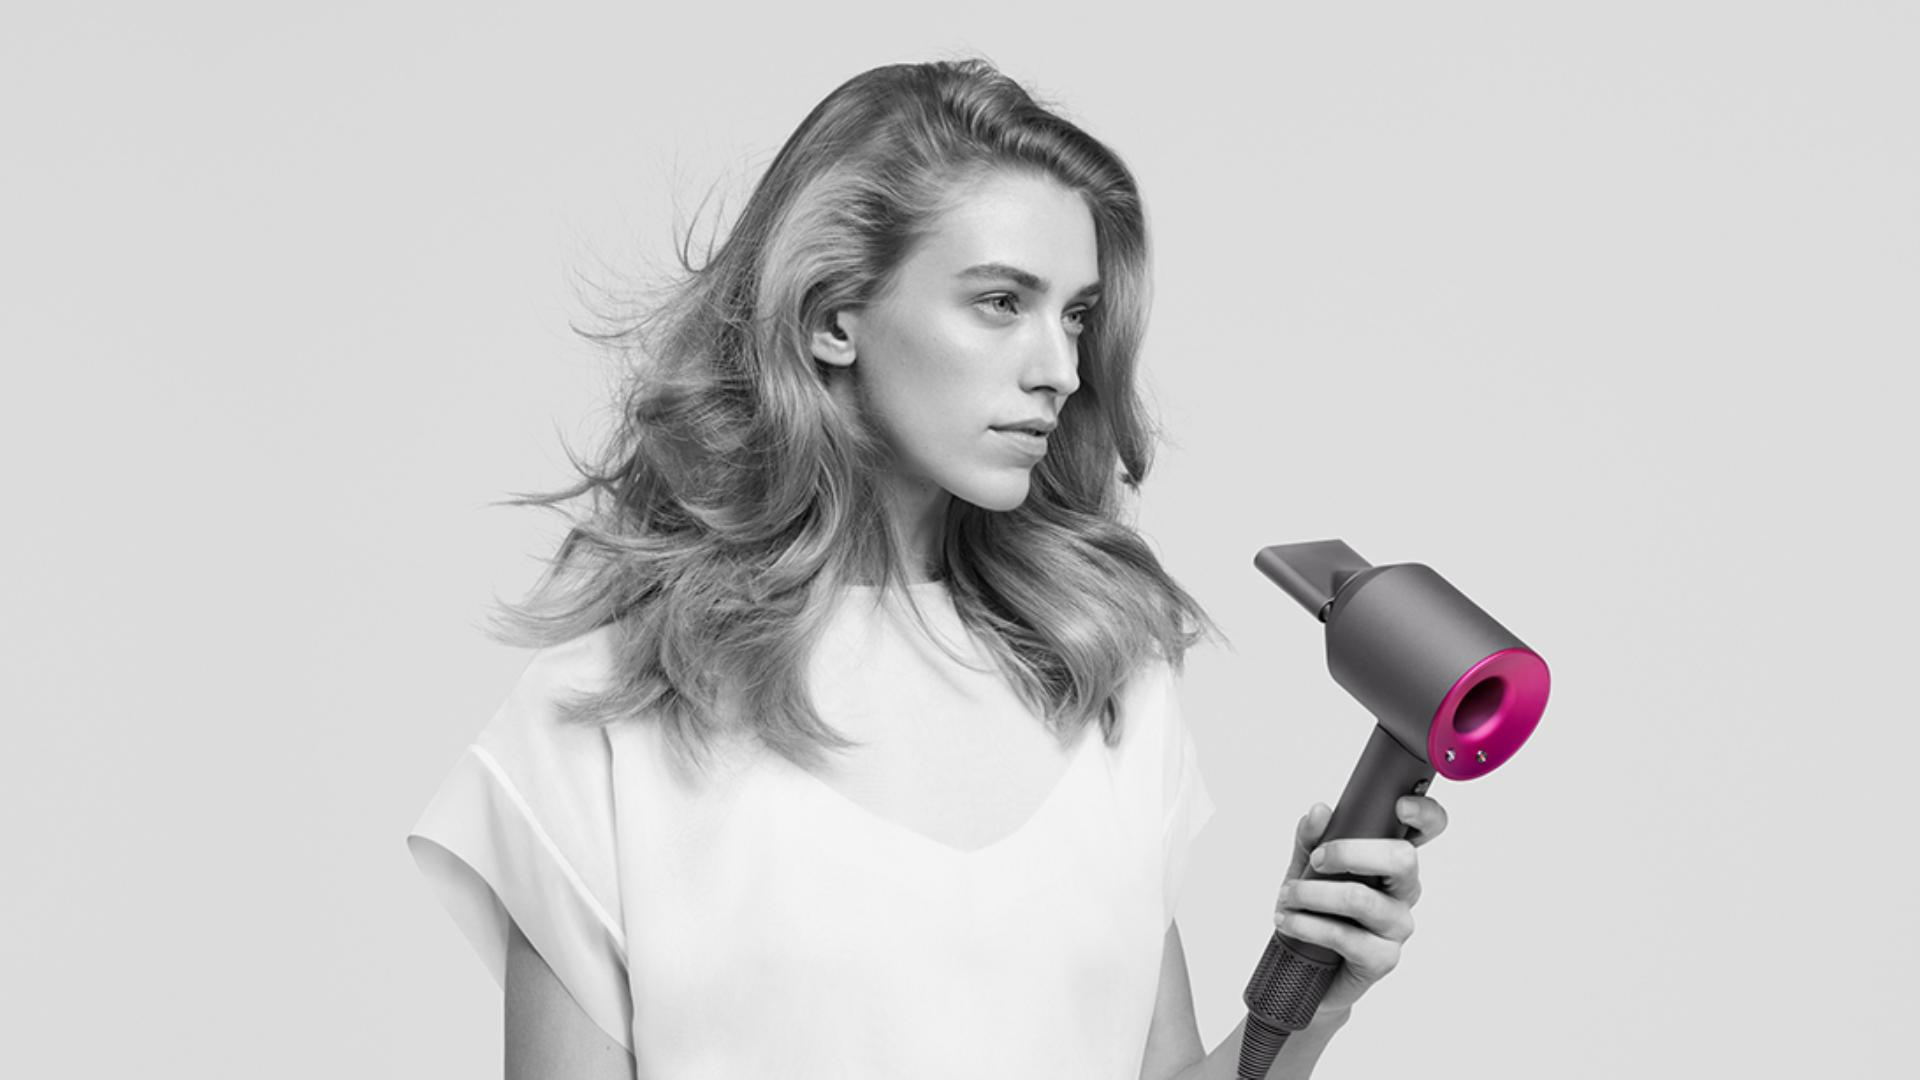 Model using Dyson Supersonic™ hair dryer